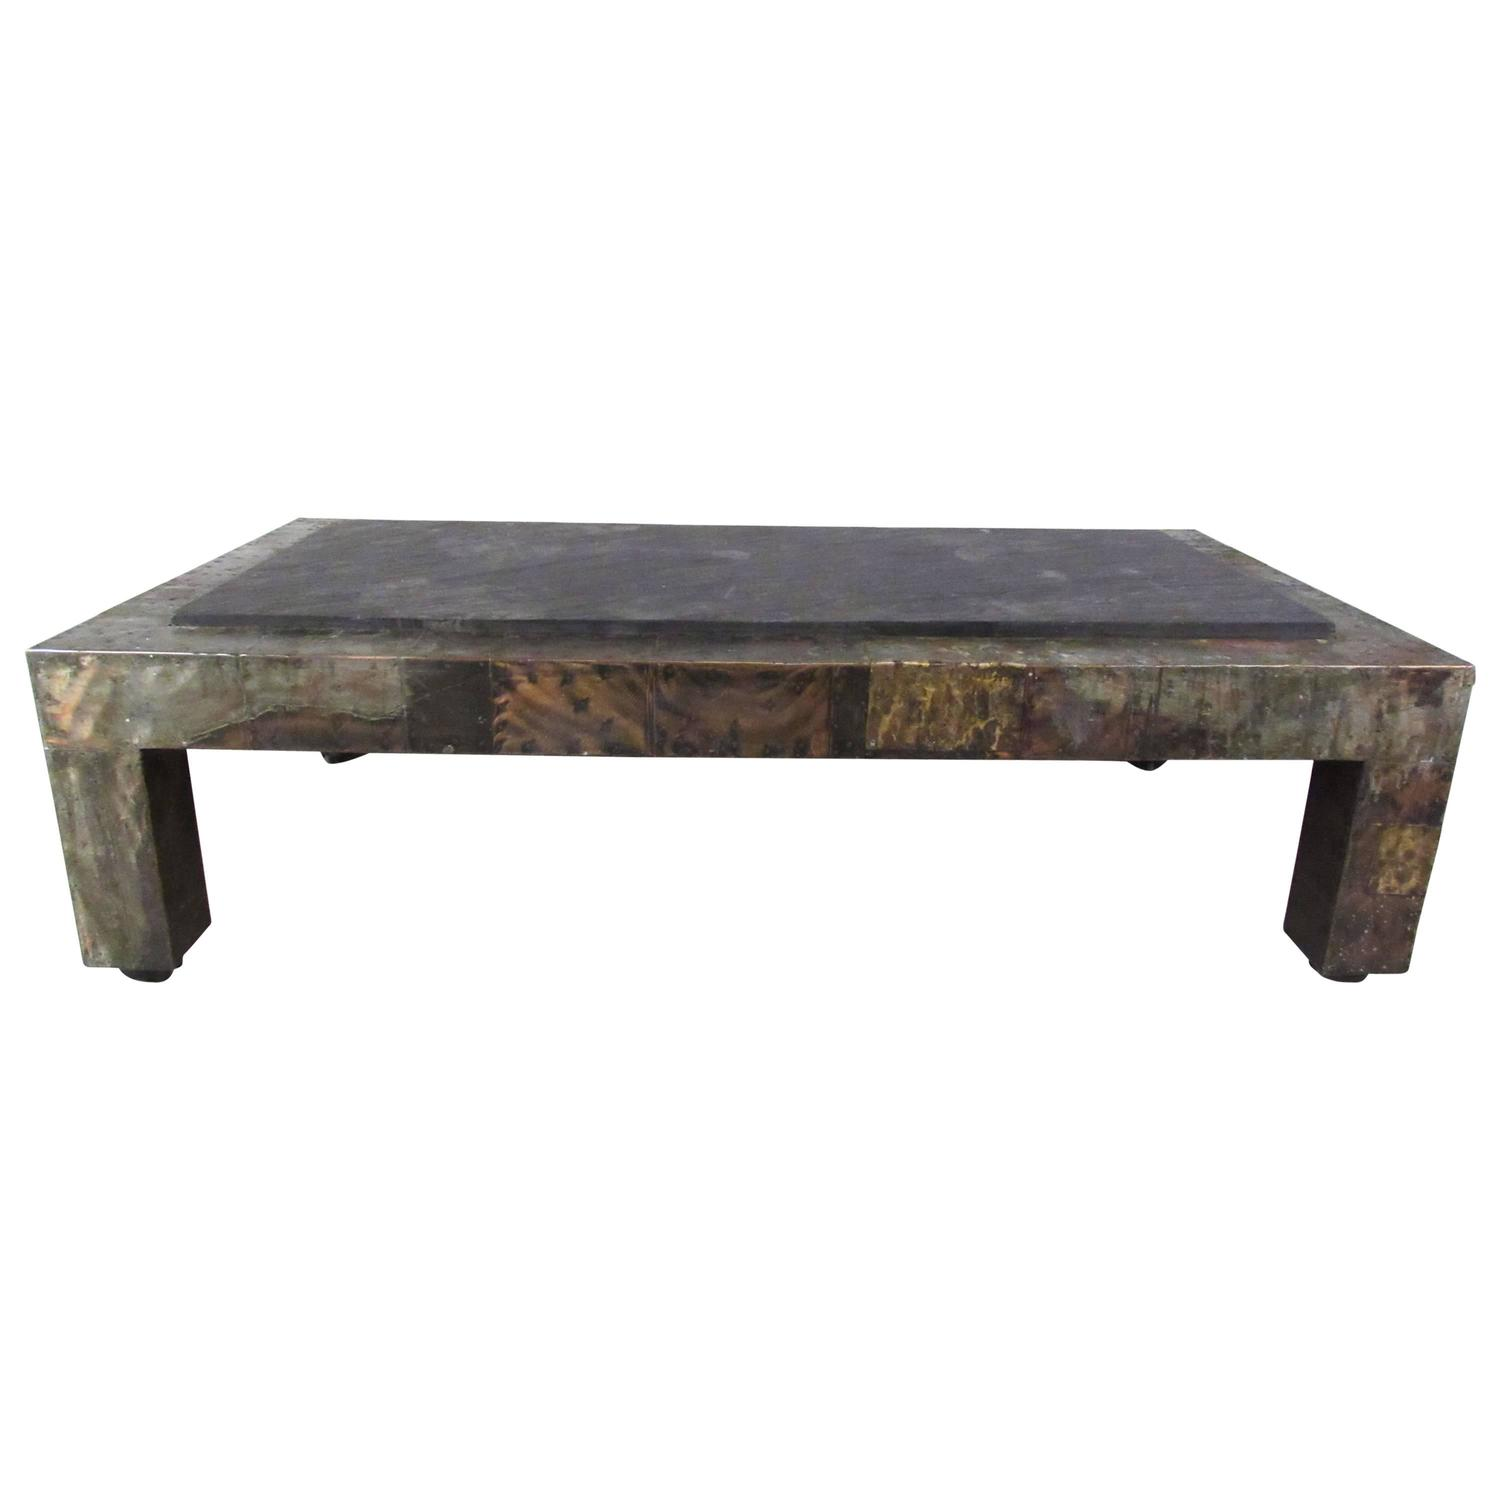 Mid century slate top patchwork metal coffee table by paul evans for sale at 1stdibs Slate top coffee tables